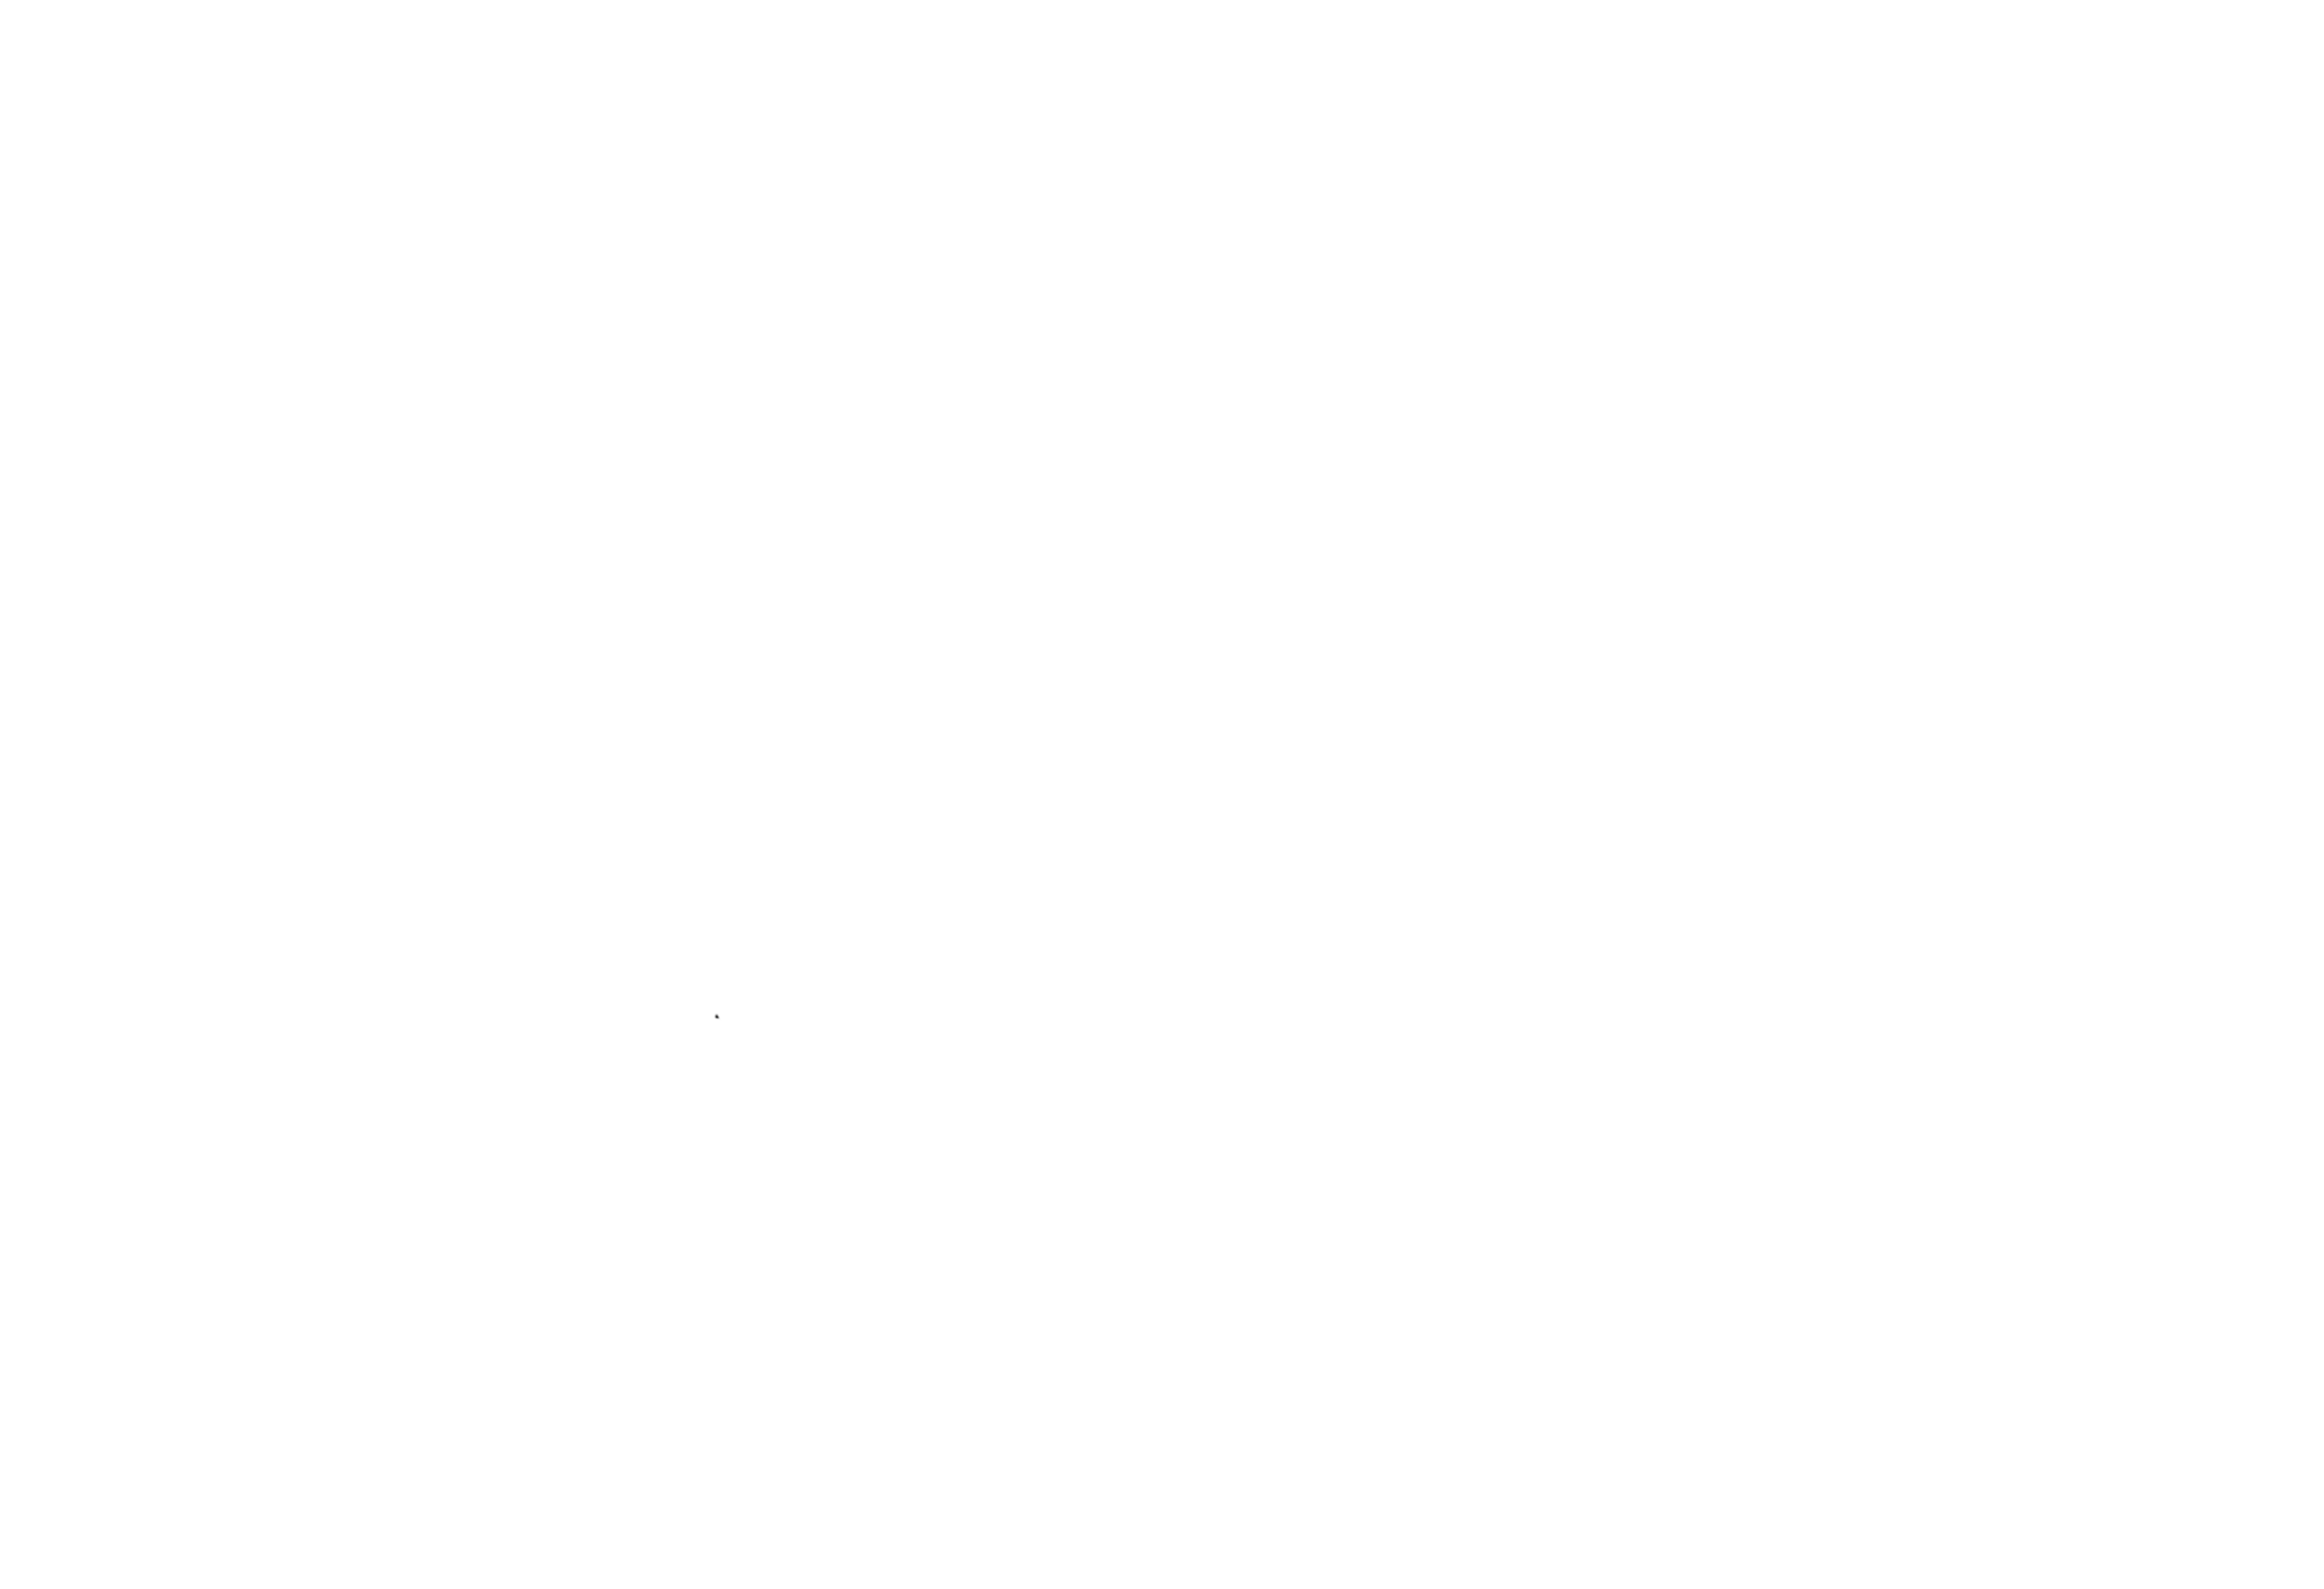 Lift Off Sessions 2019 white Finalist